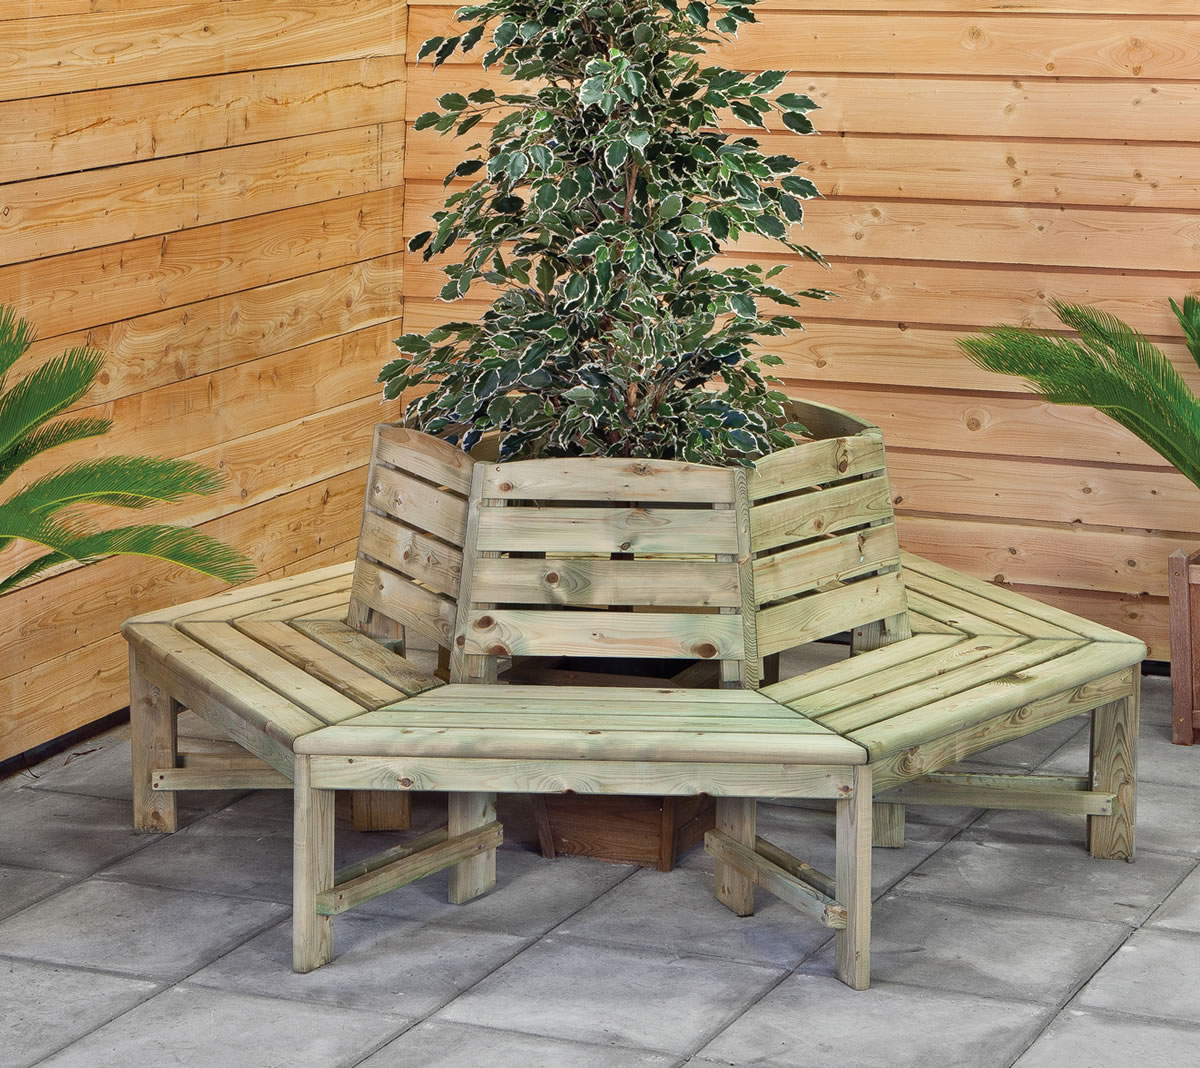 Hexagonal tree seat